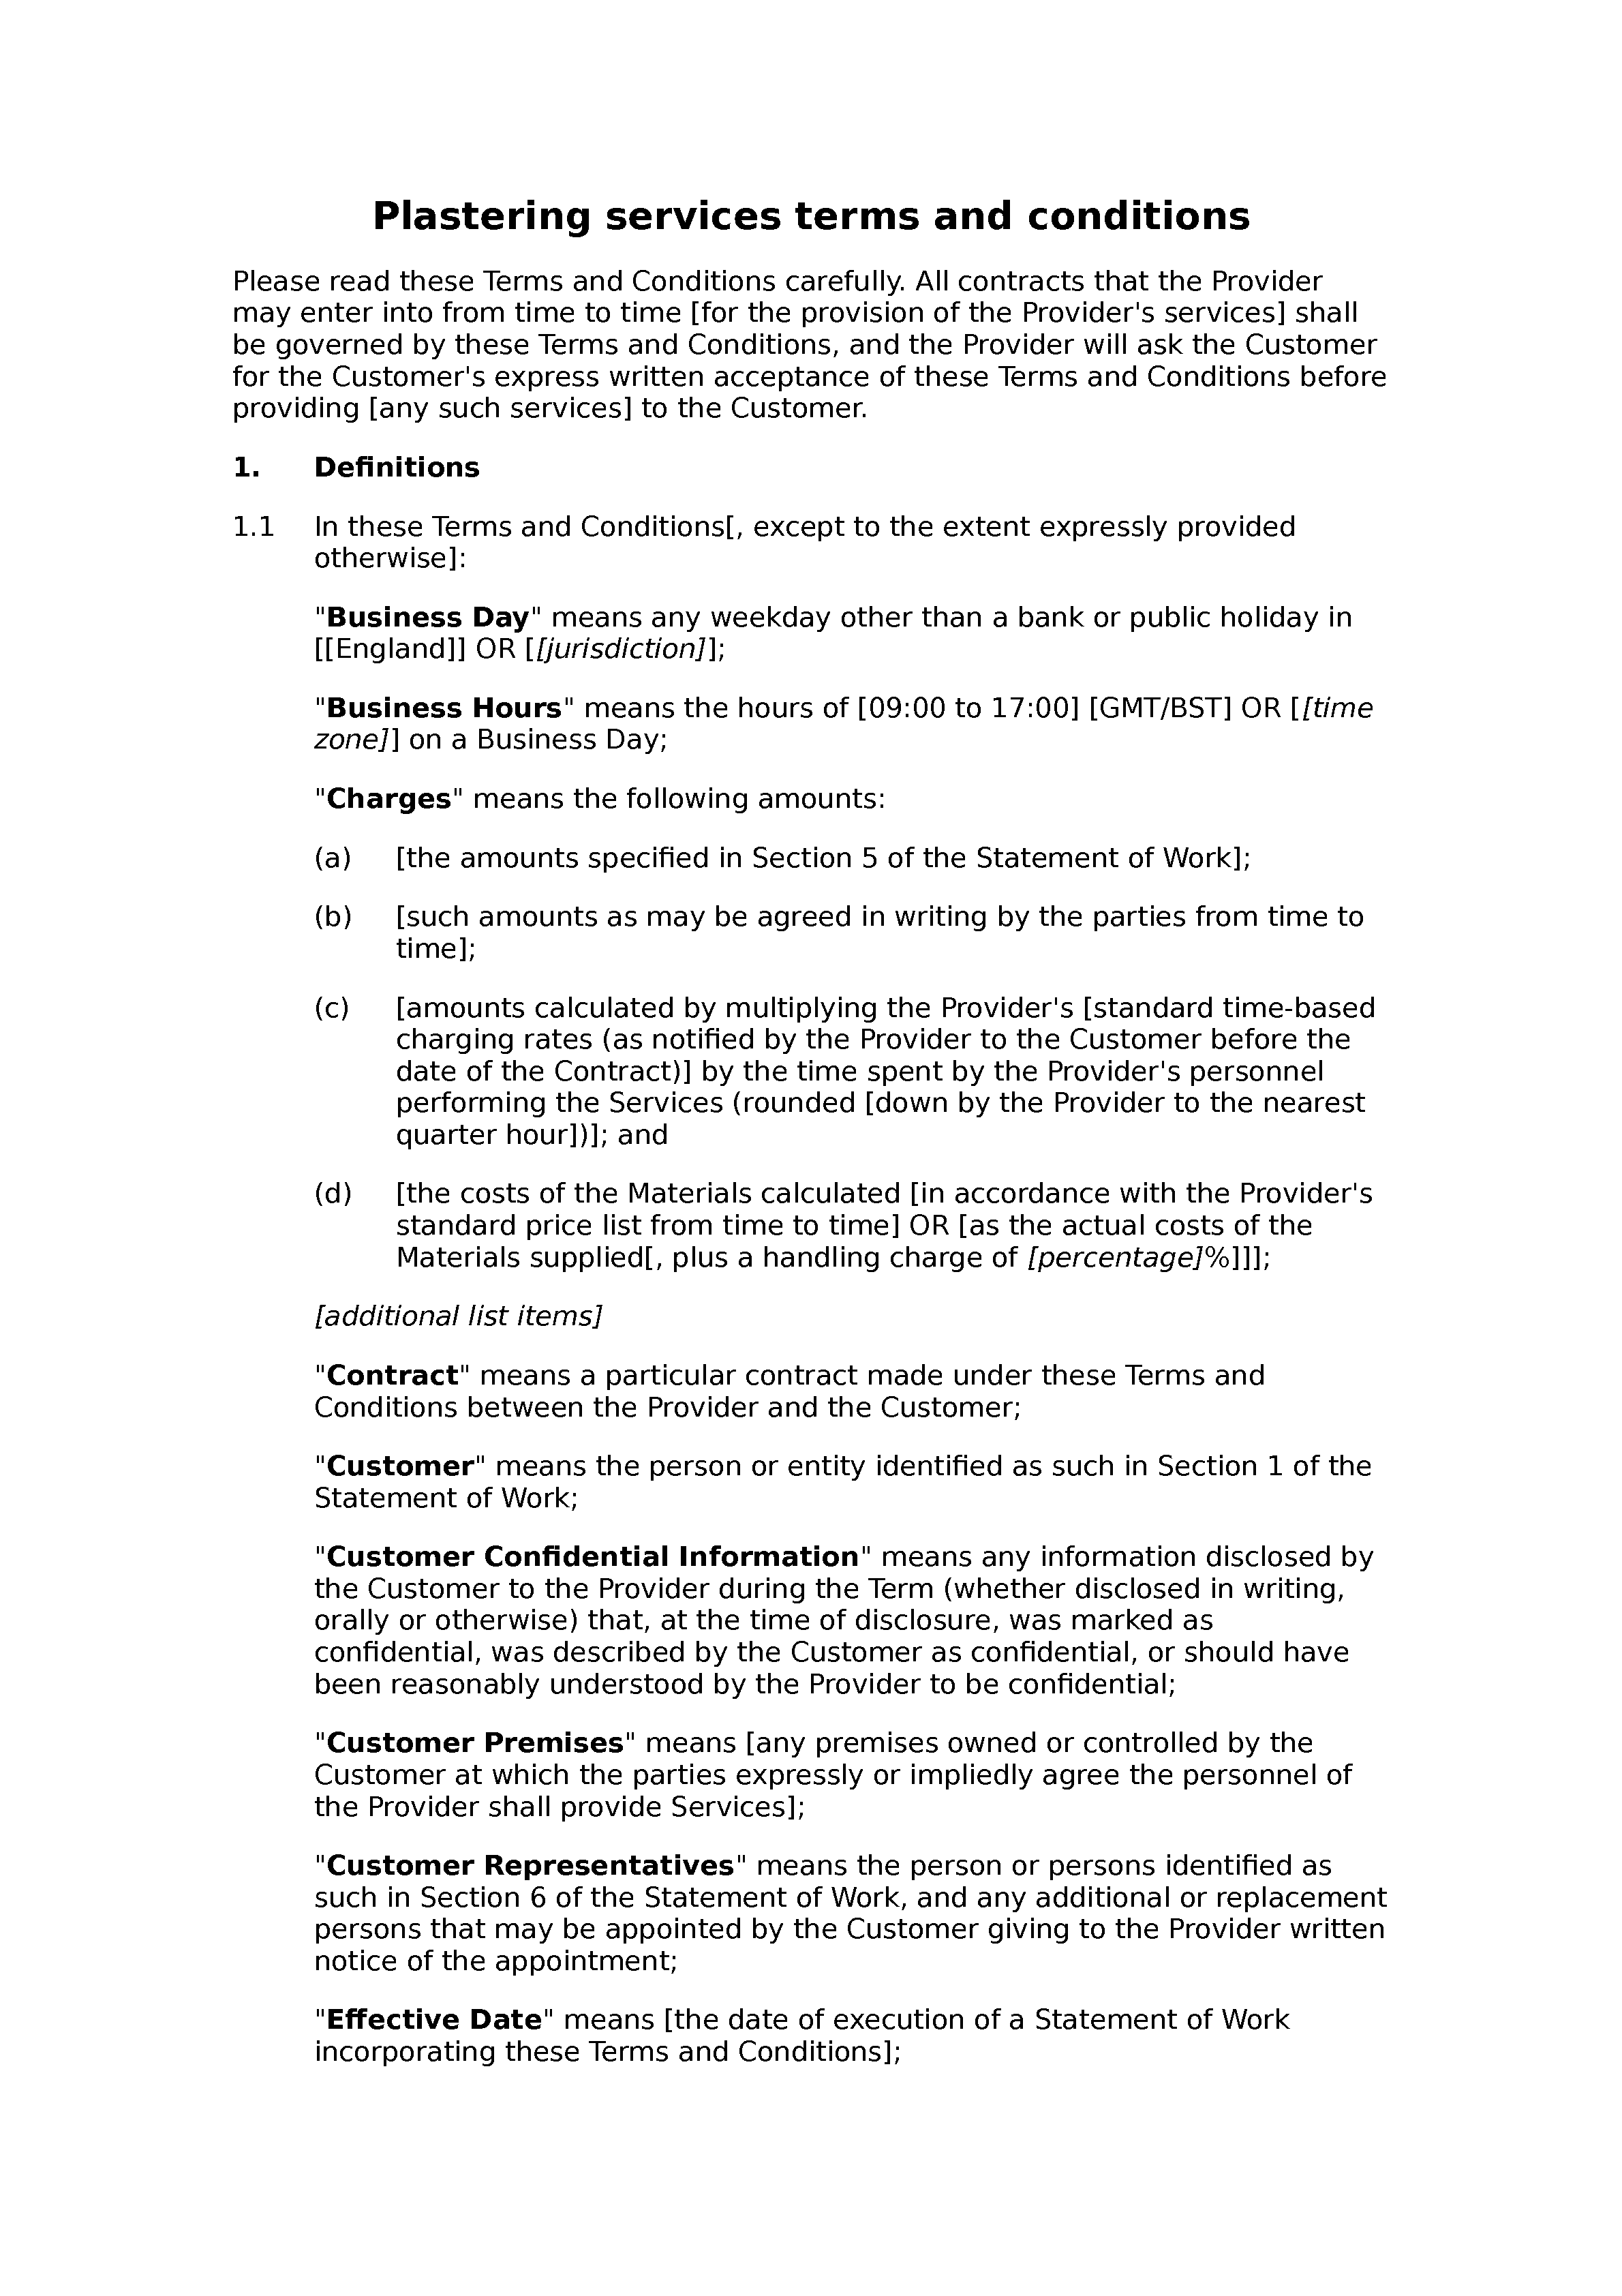 Plastering services terms and conditions document preview